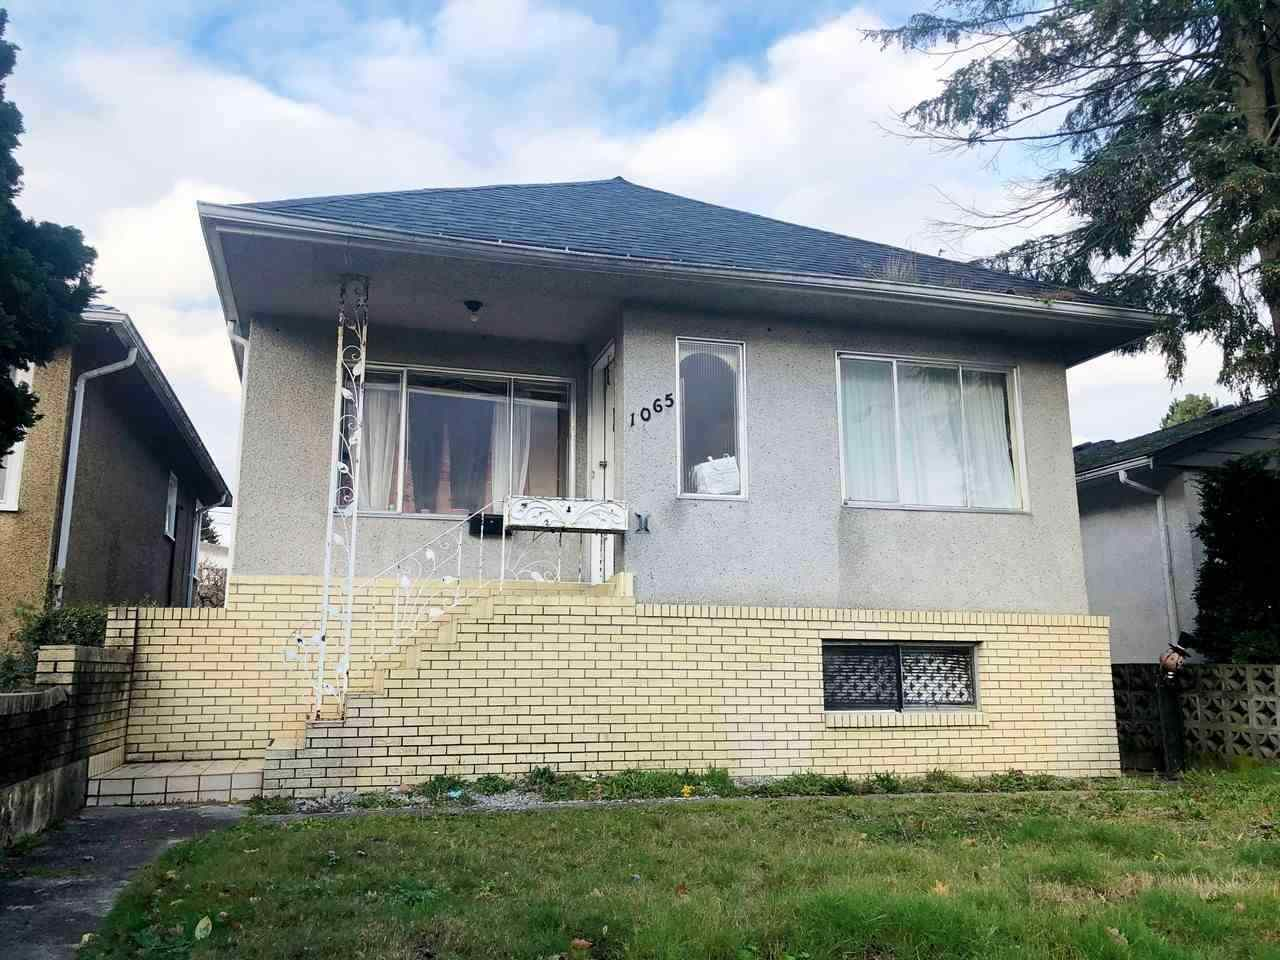 1065 E 56TH AVENUE - South Vancouver House/Single Family for sale, 6 Bedrooms (R2574274) - #1